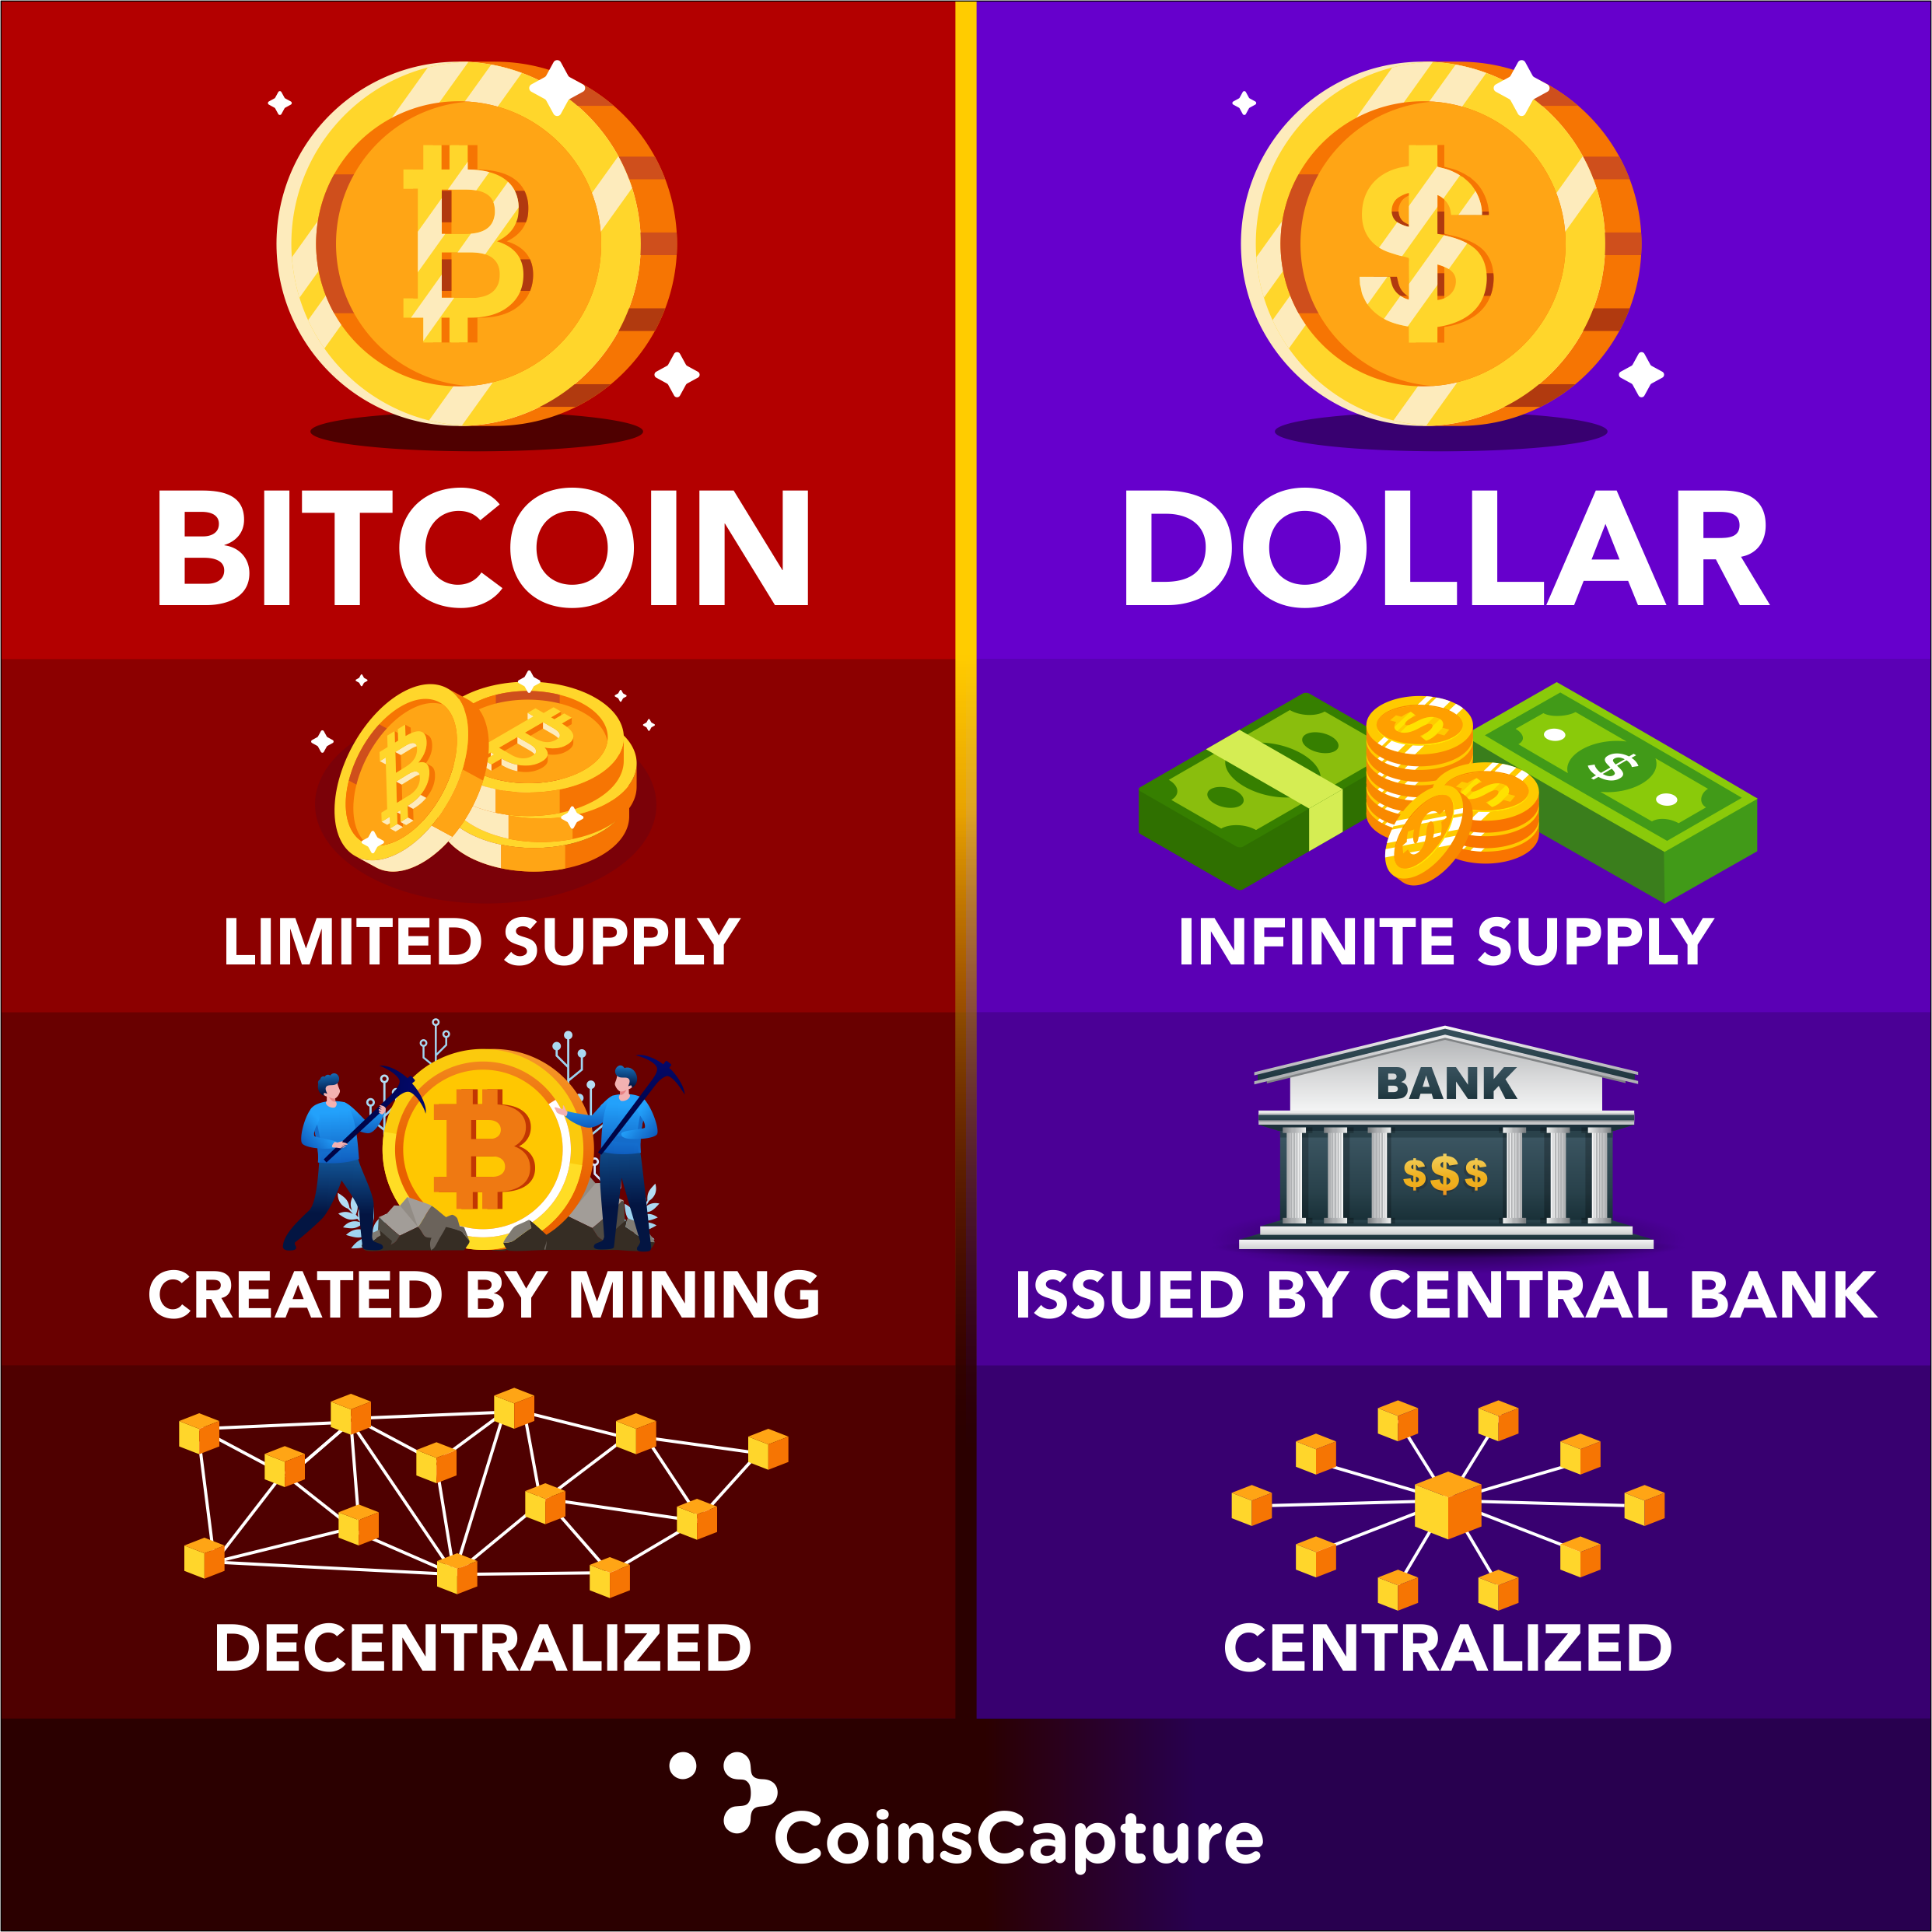 which cryptocurrencies have limited supply